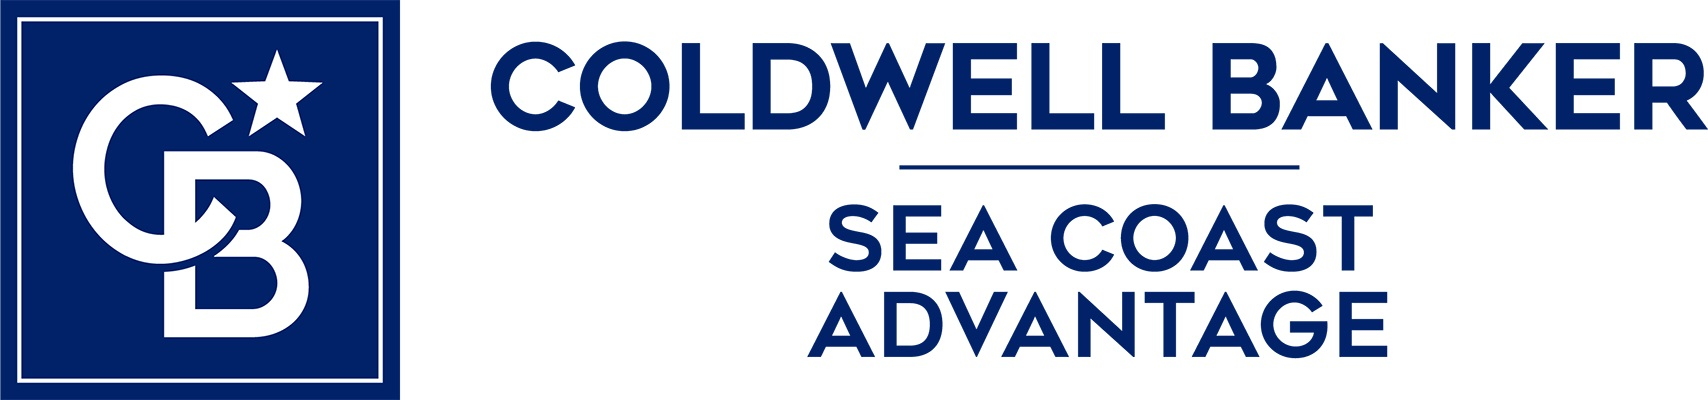 Michelle Roberts - Coldwell Banker Sea Coast Advantage Realty